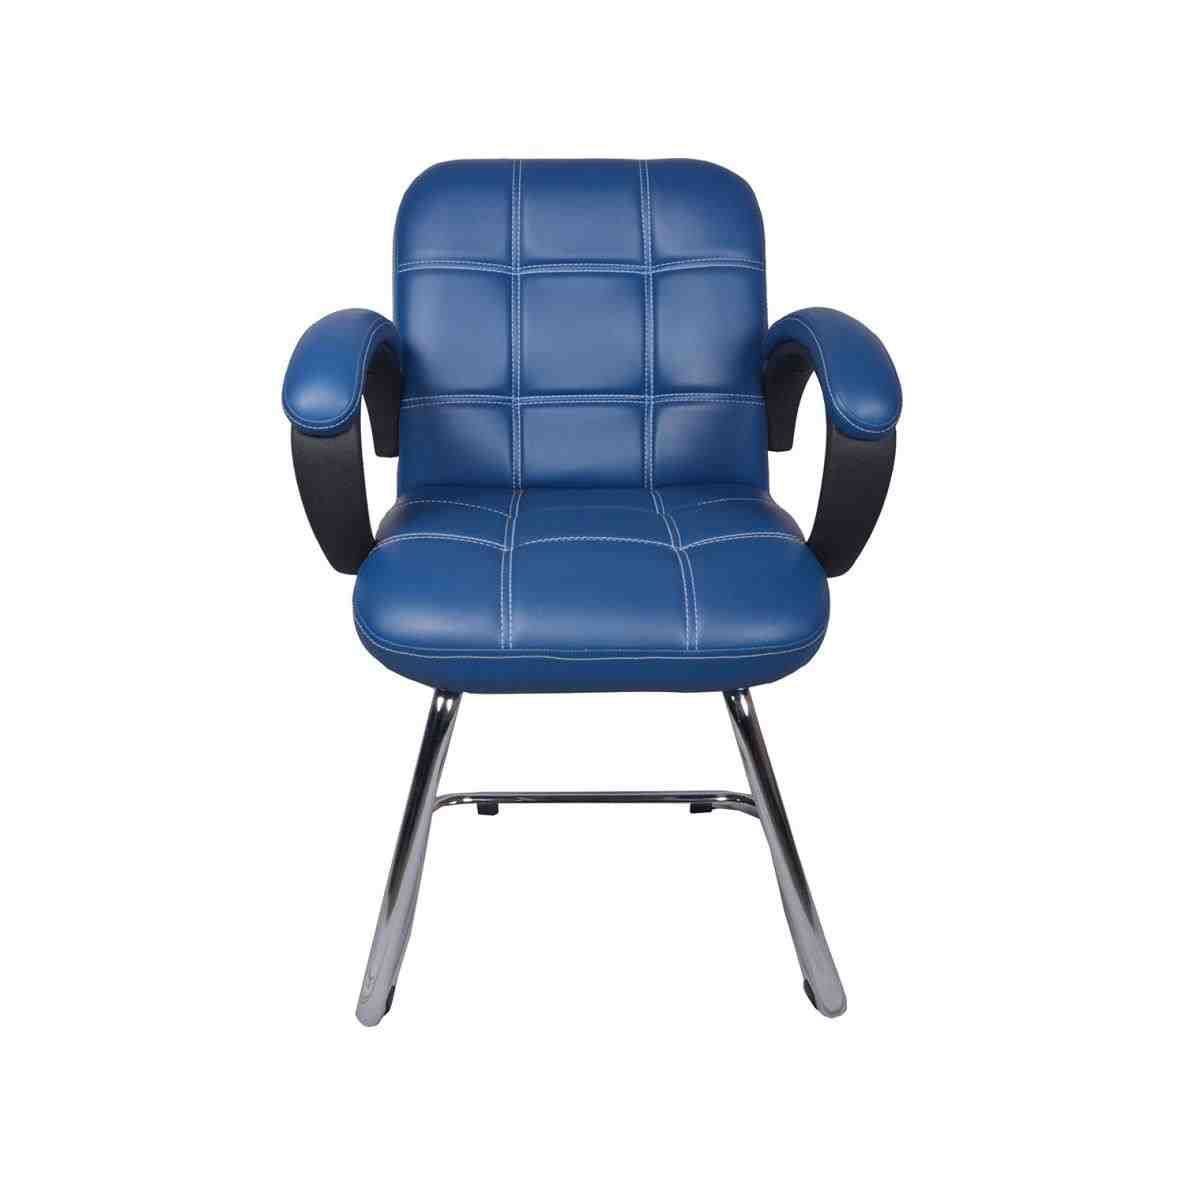 Office Chair Online India Desk Silicon Valley Cheap Chairs Executive Glass Type Very